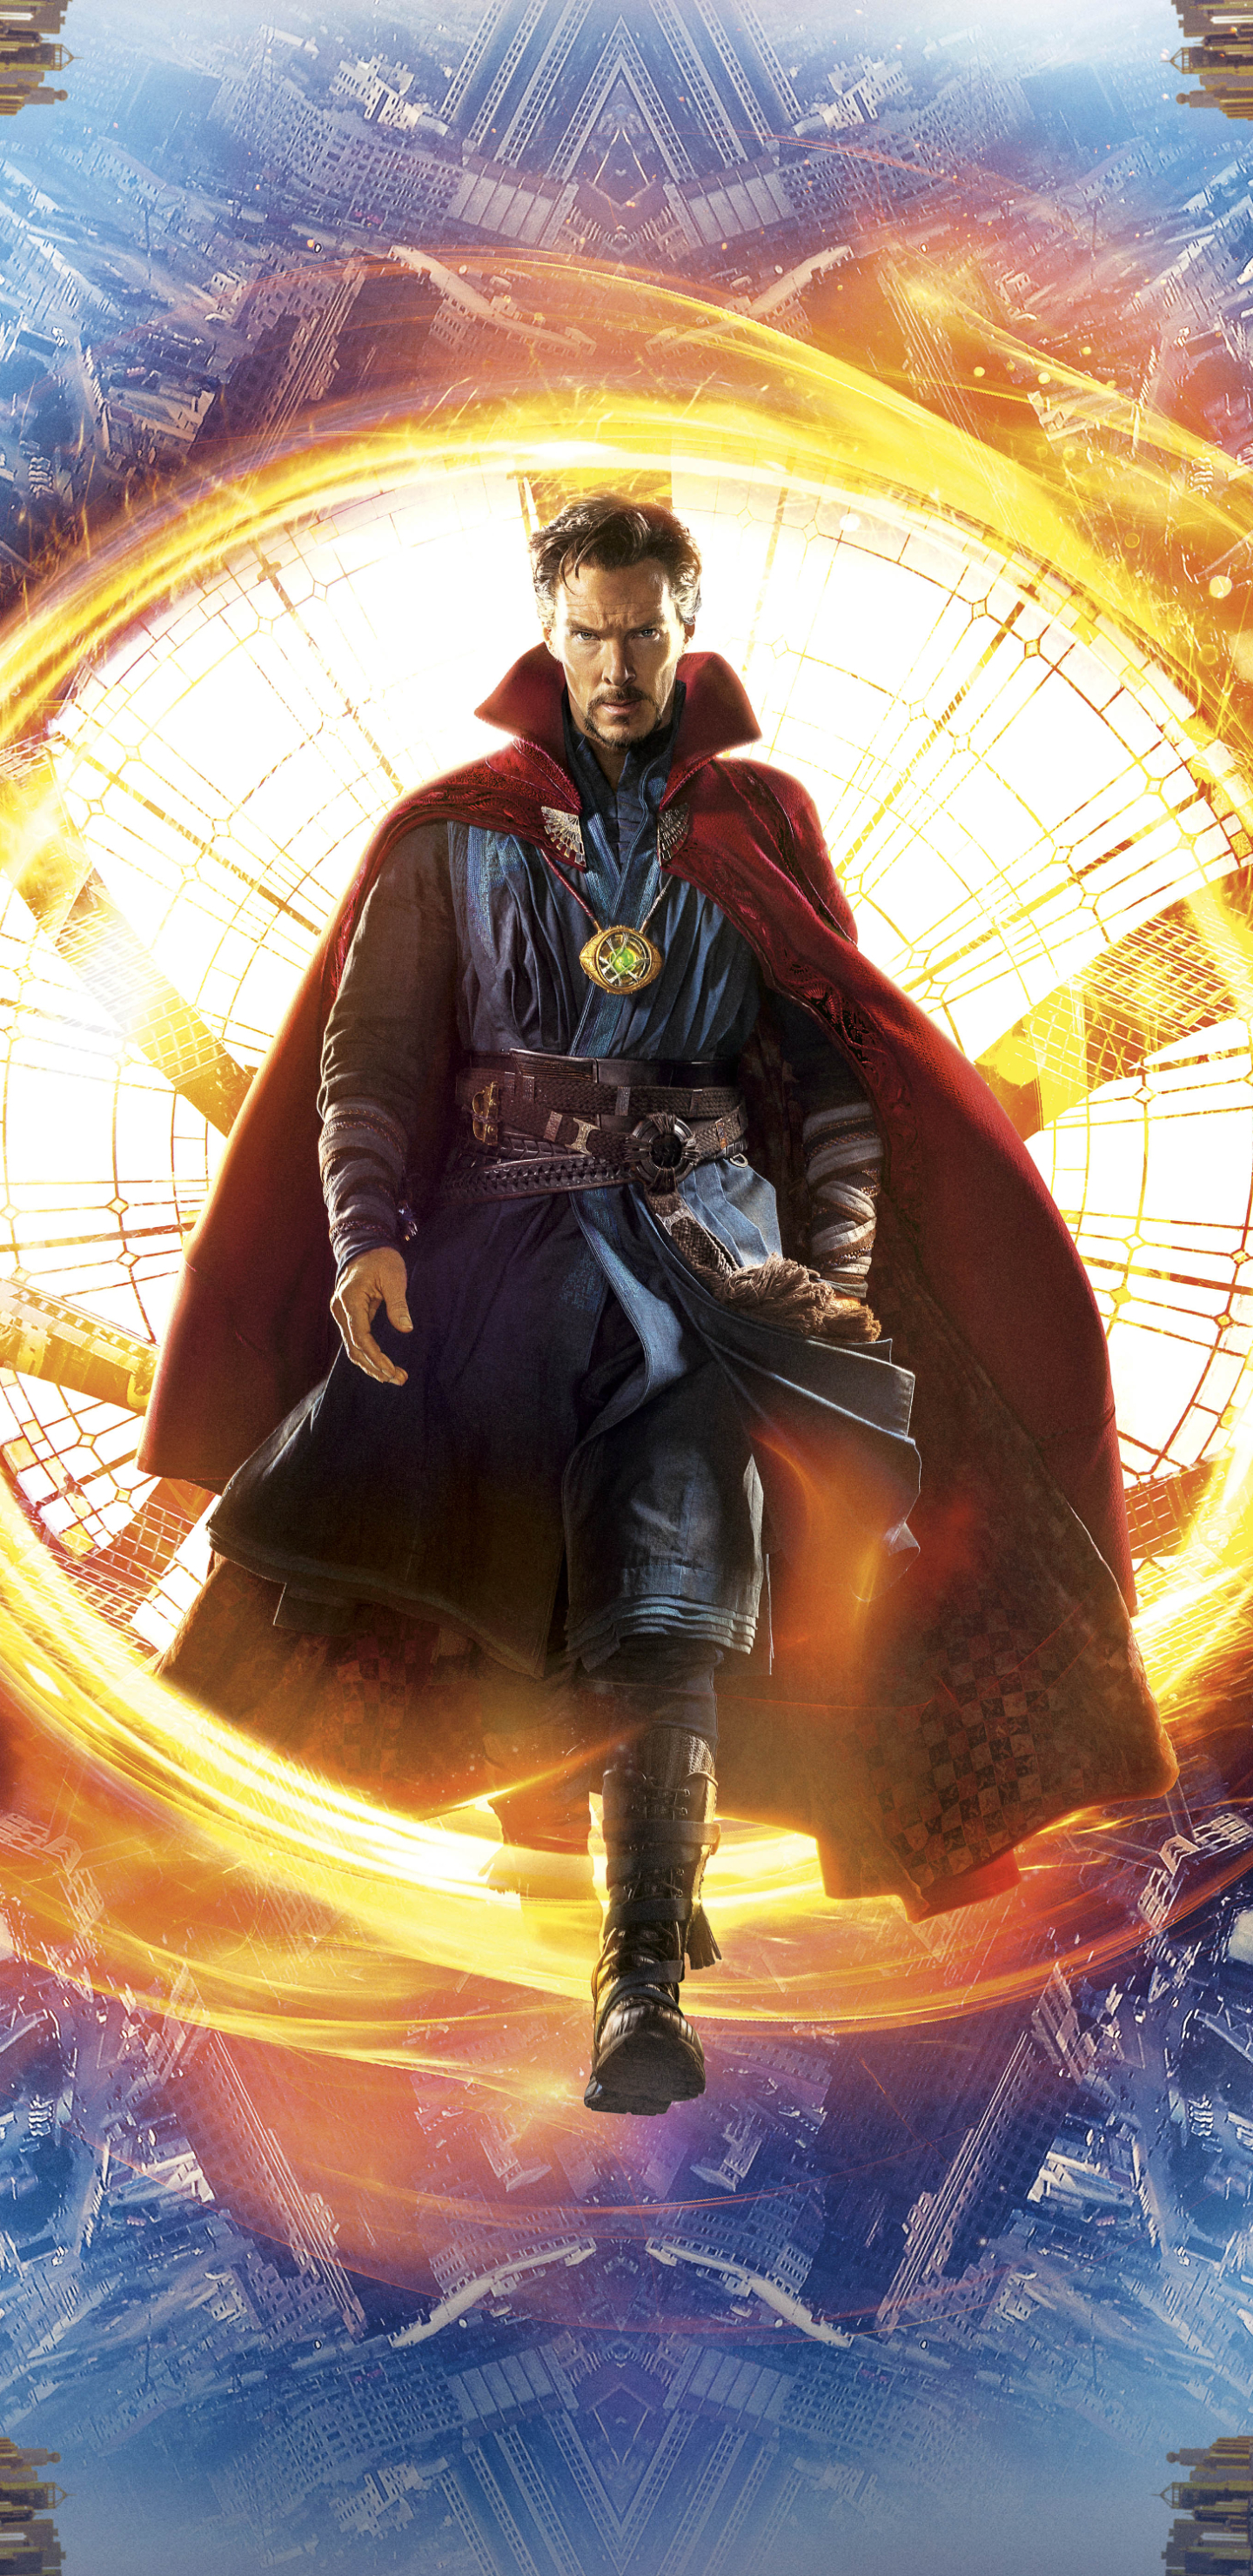 movie/doctor strange (1440x2960) wallpaper id: 710370 - mobile abyss